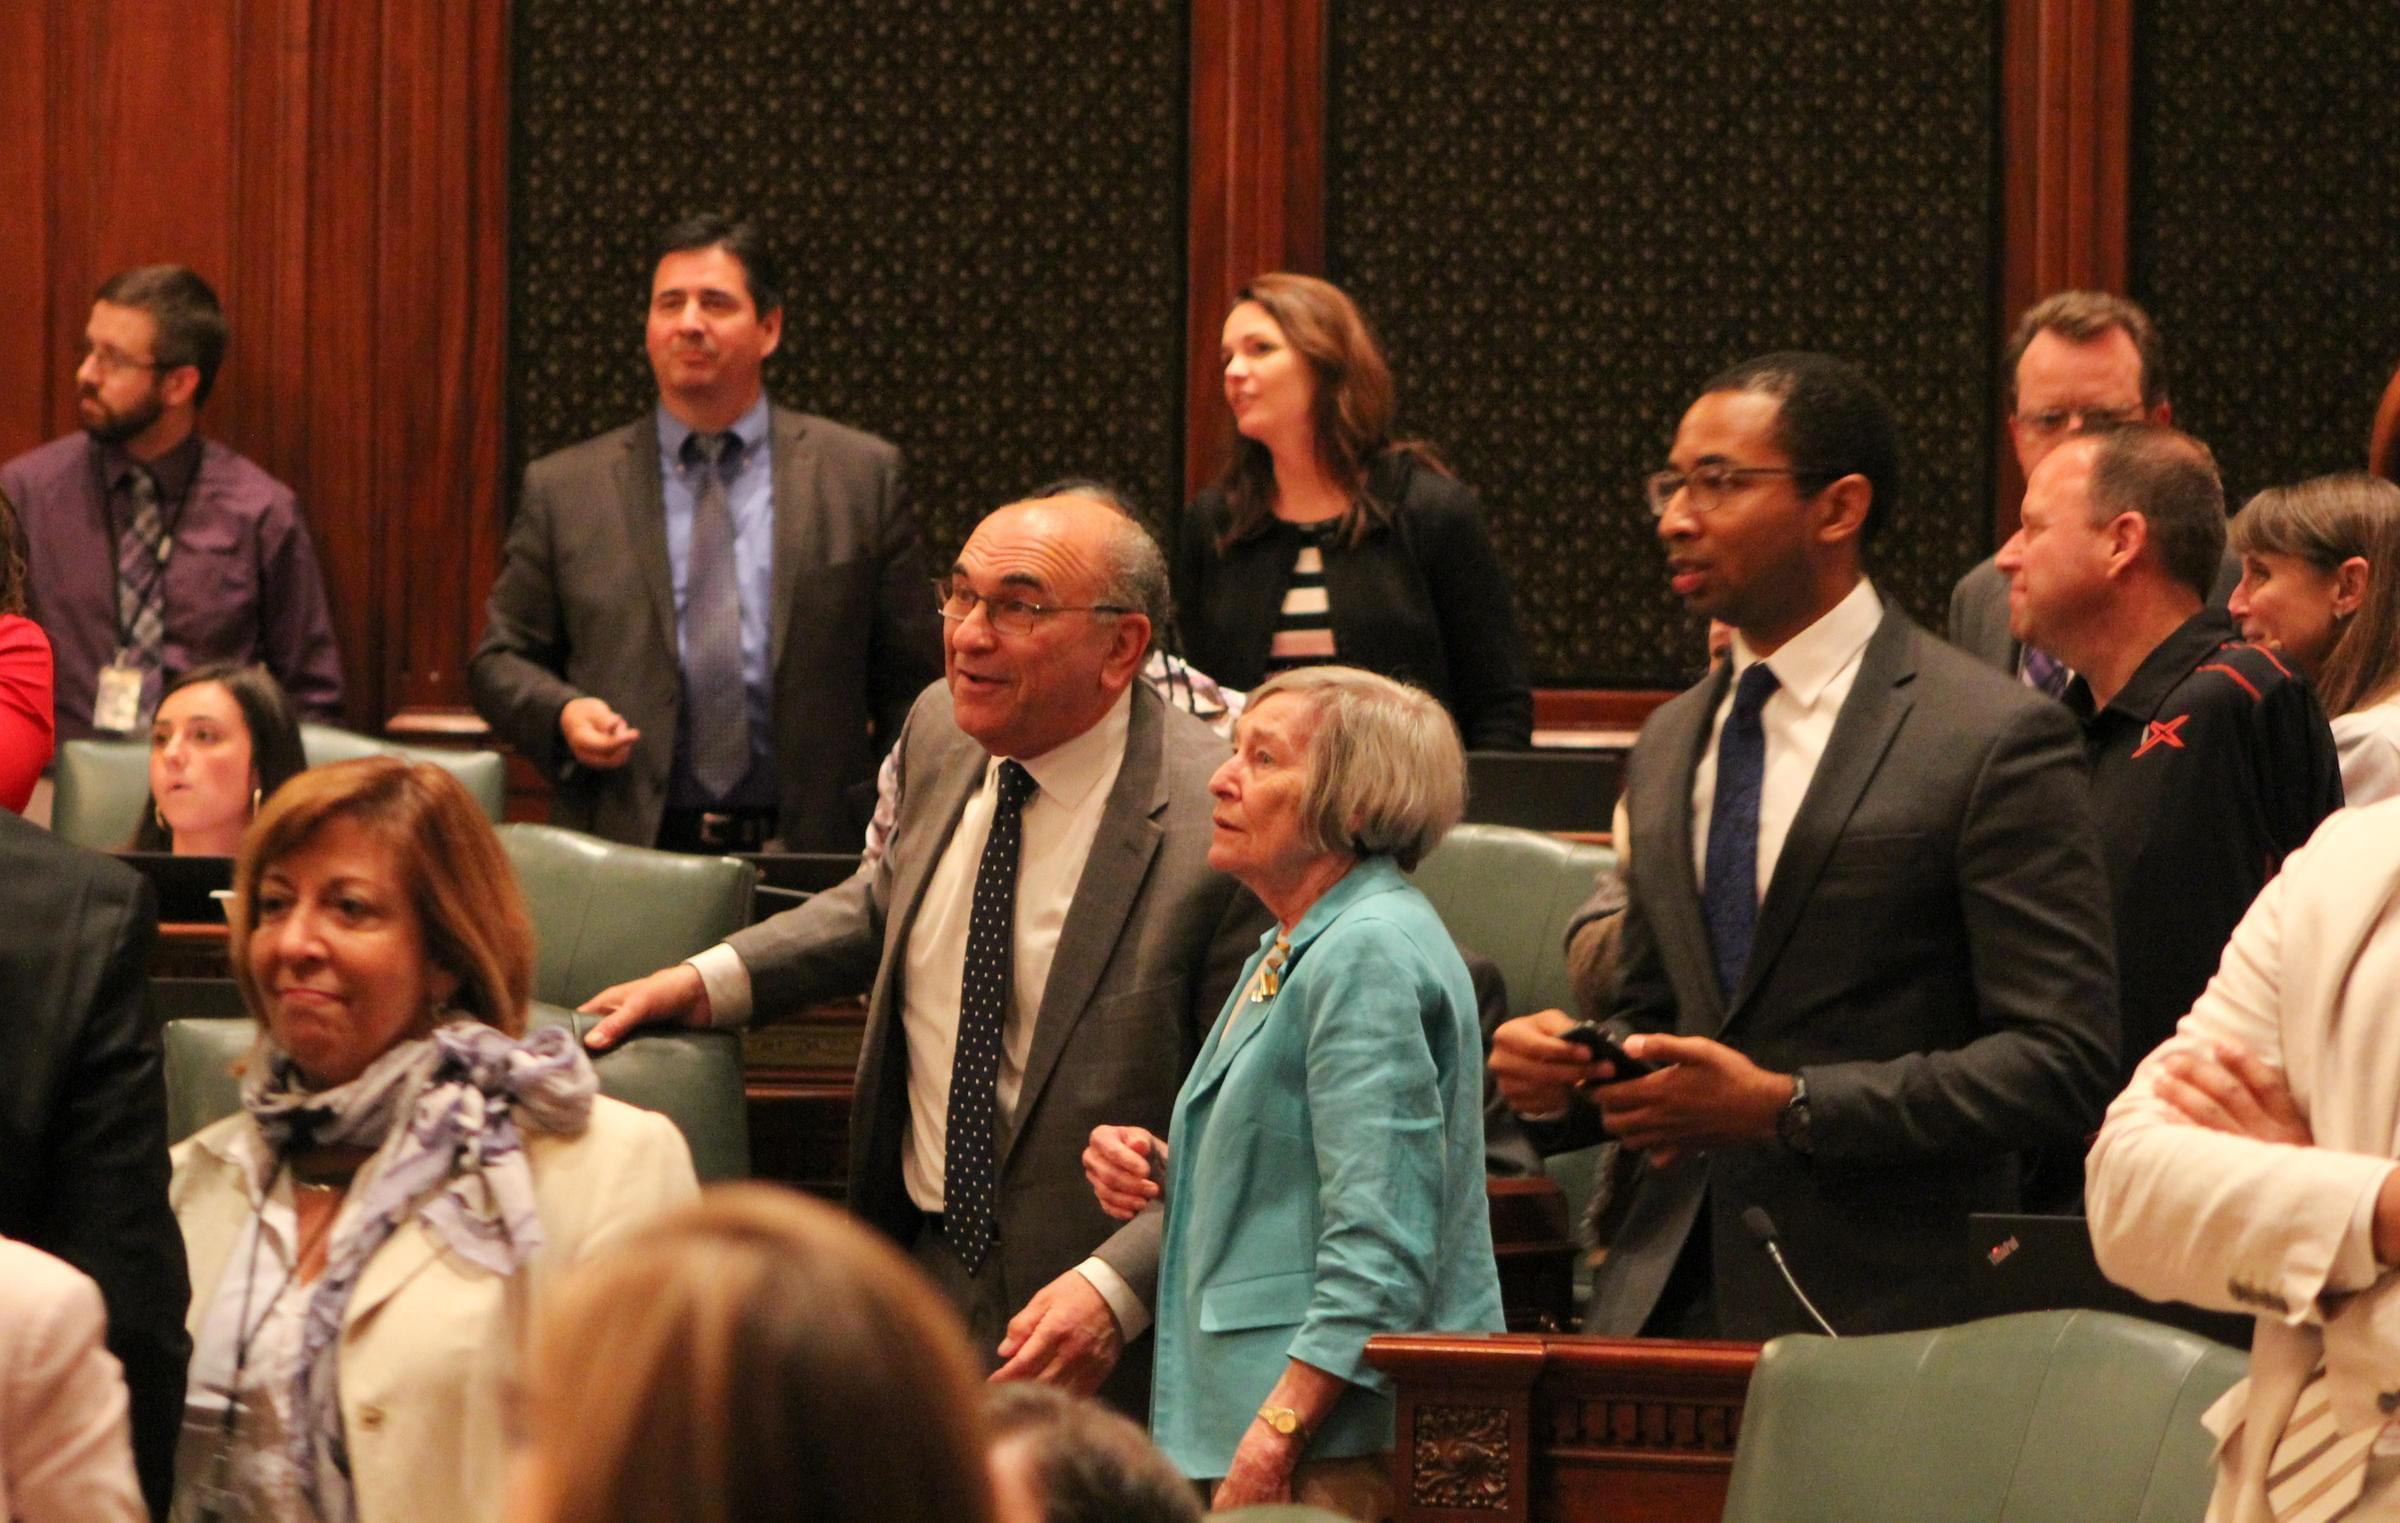 State Rep. Lou Lang and Majority Leader Rep. Barbara Flynn Currie watch the roll call verification as the Illinois House passes the ERA.